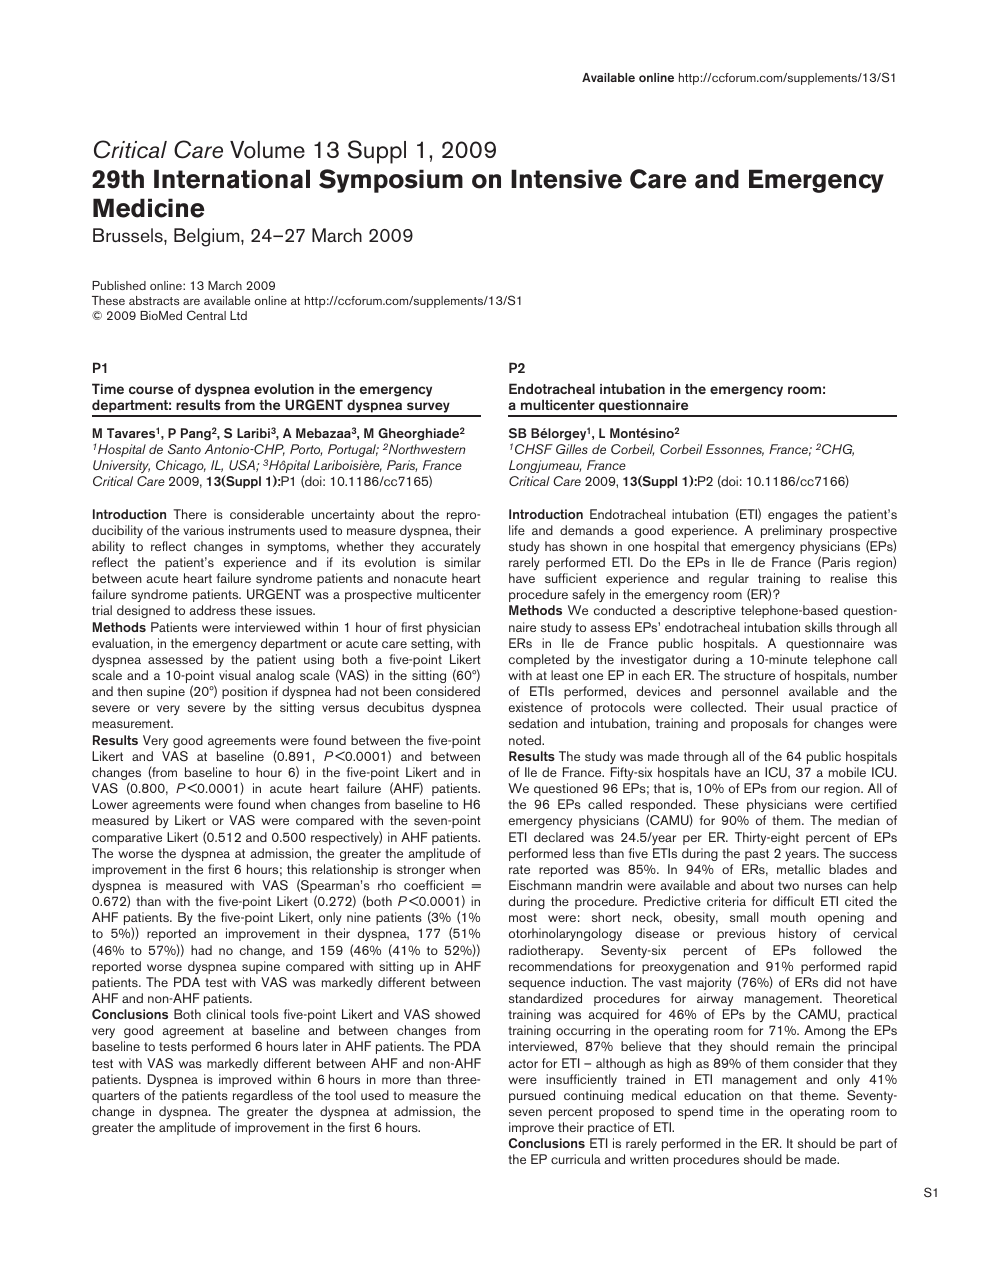 Evolution of acute lung injury/acute respiratory distress